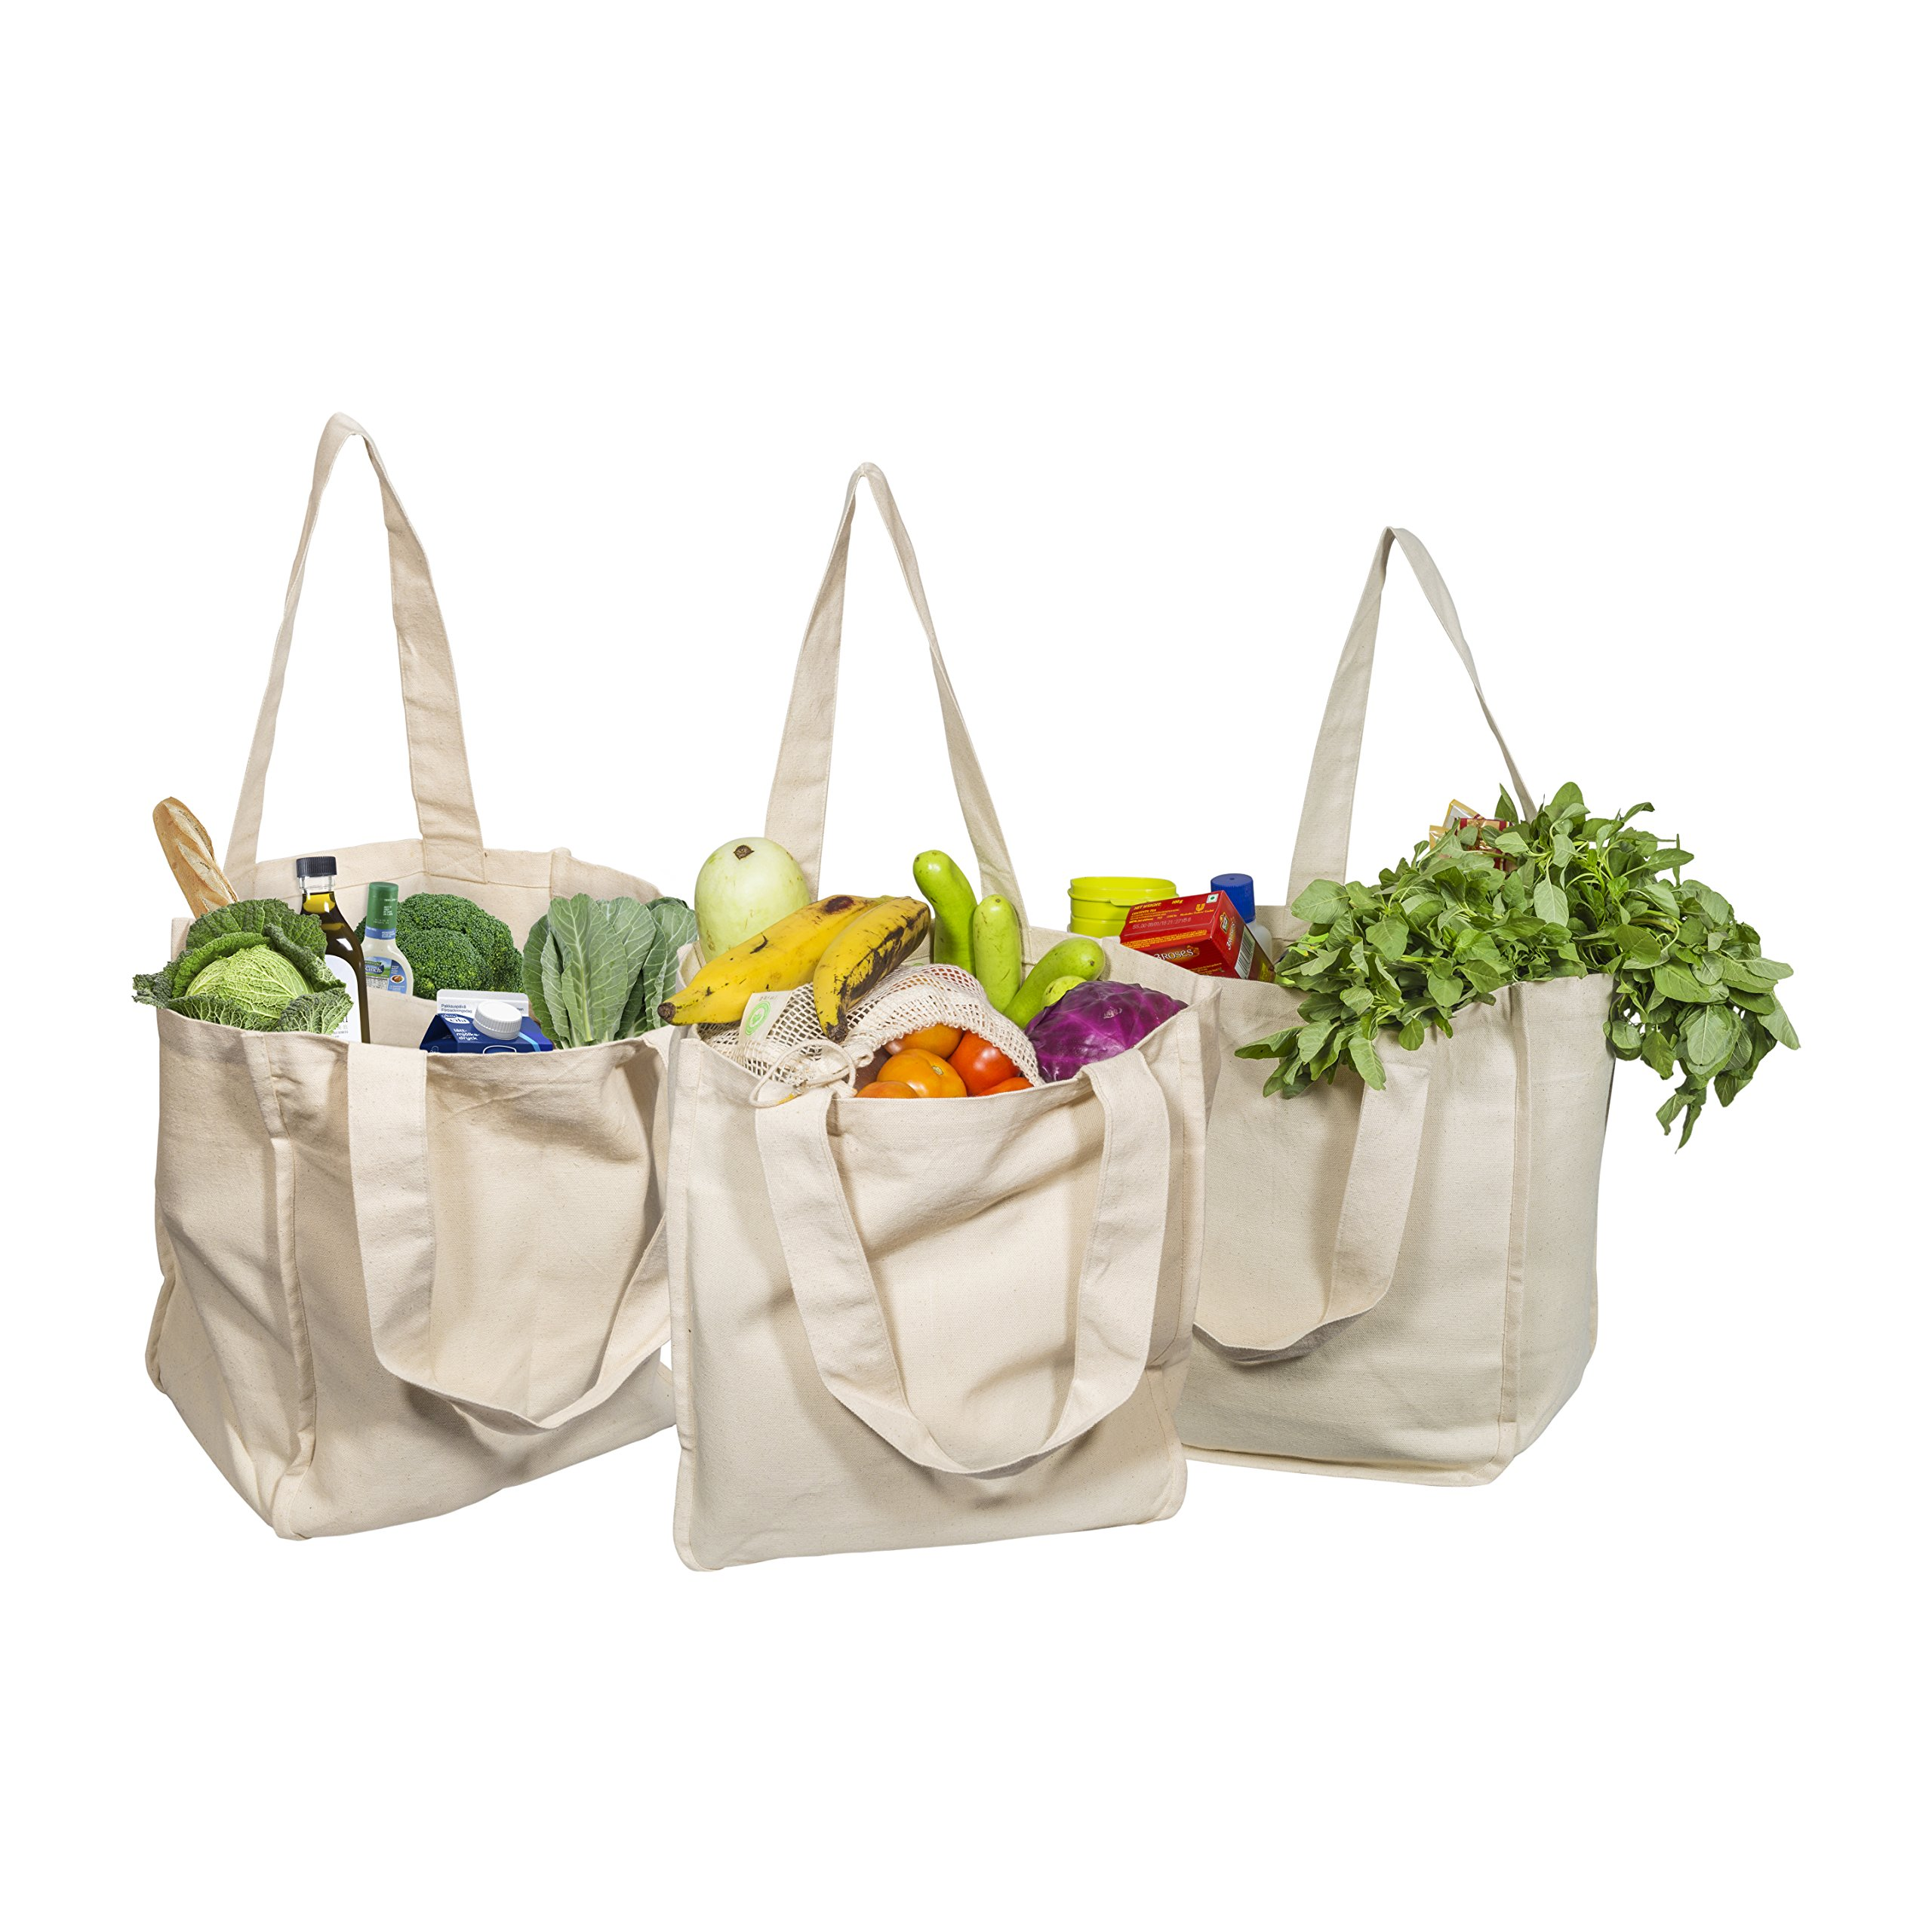 Best Canvas Grocery Shopping Bags - Canvas Grocery Shopping Bags with Handles - Cloth Grocery Tote Bags - Reusable Shopping Grocery Bags - Organic Cotton Washable & Eco-friendly Bags (Pack of 3)